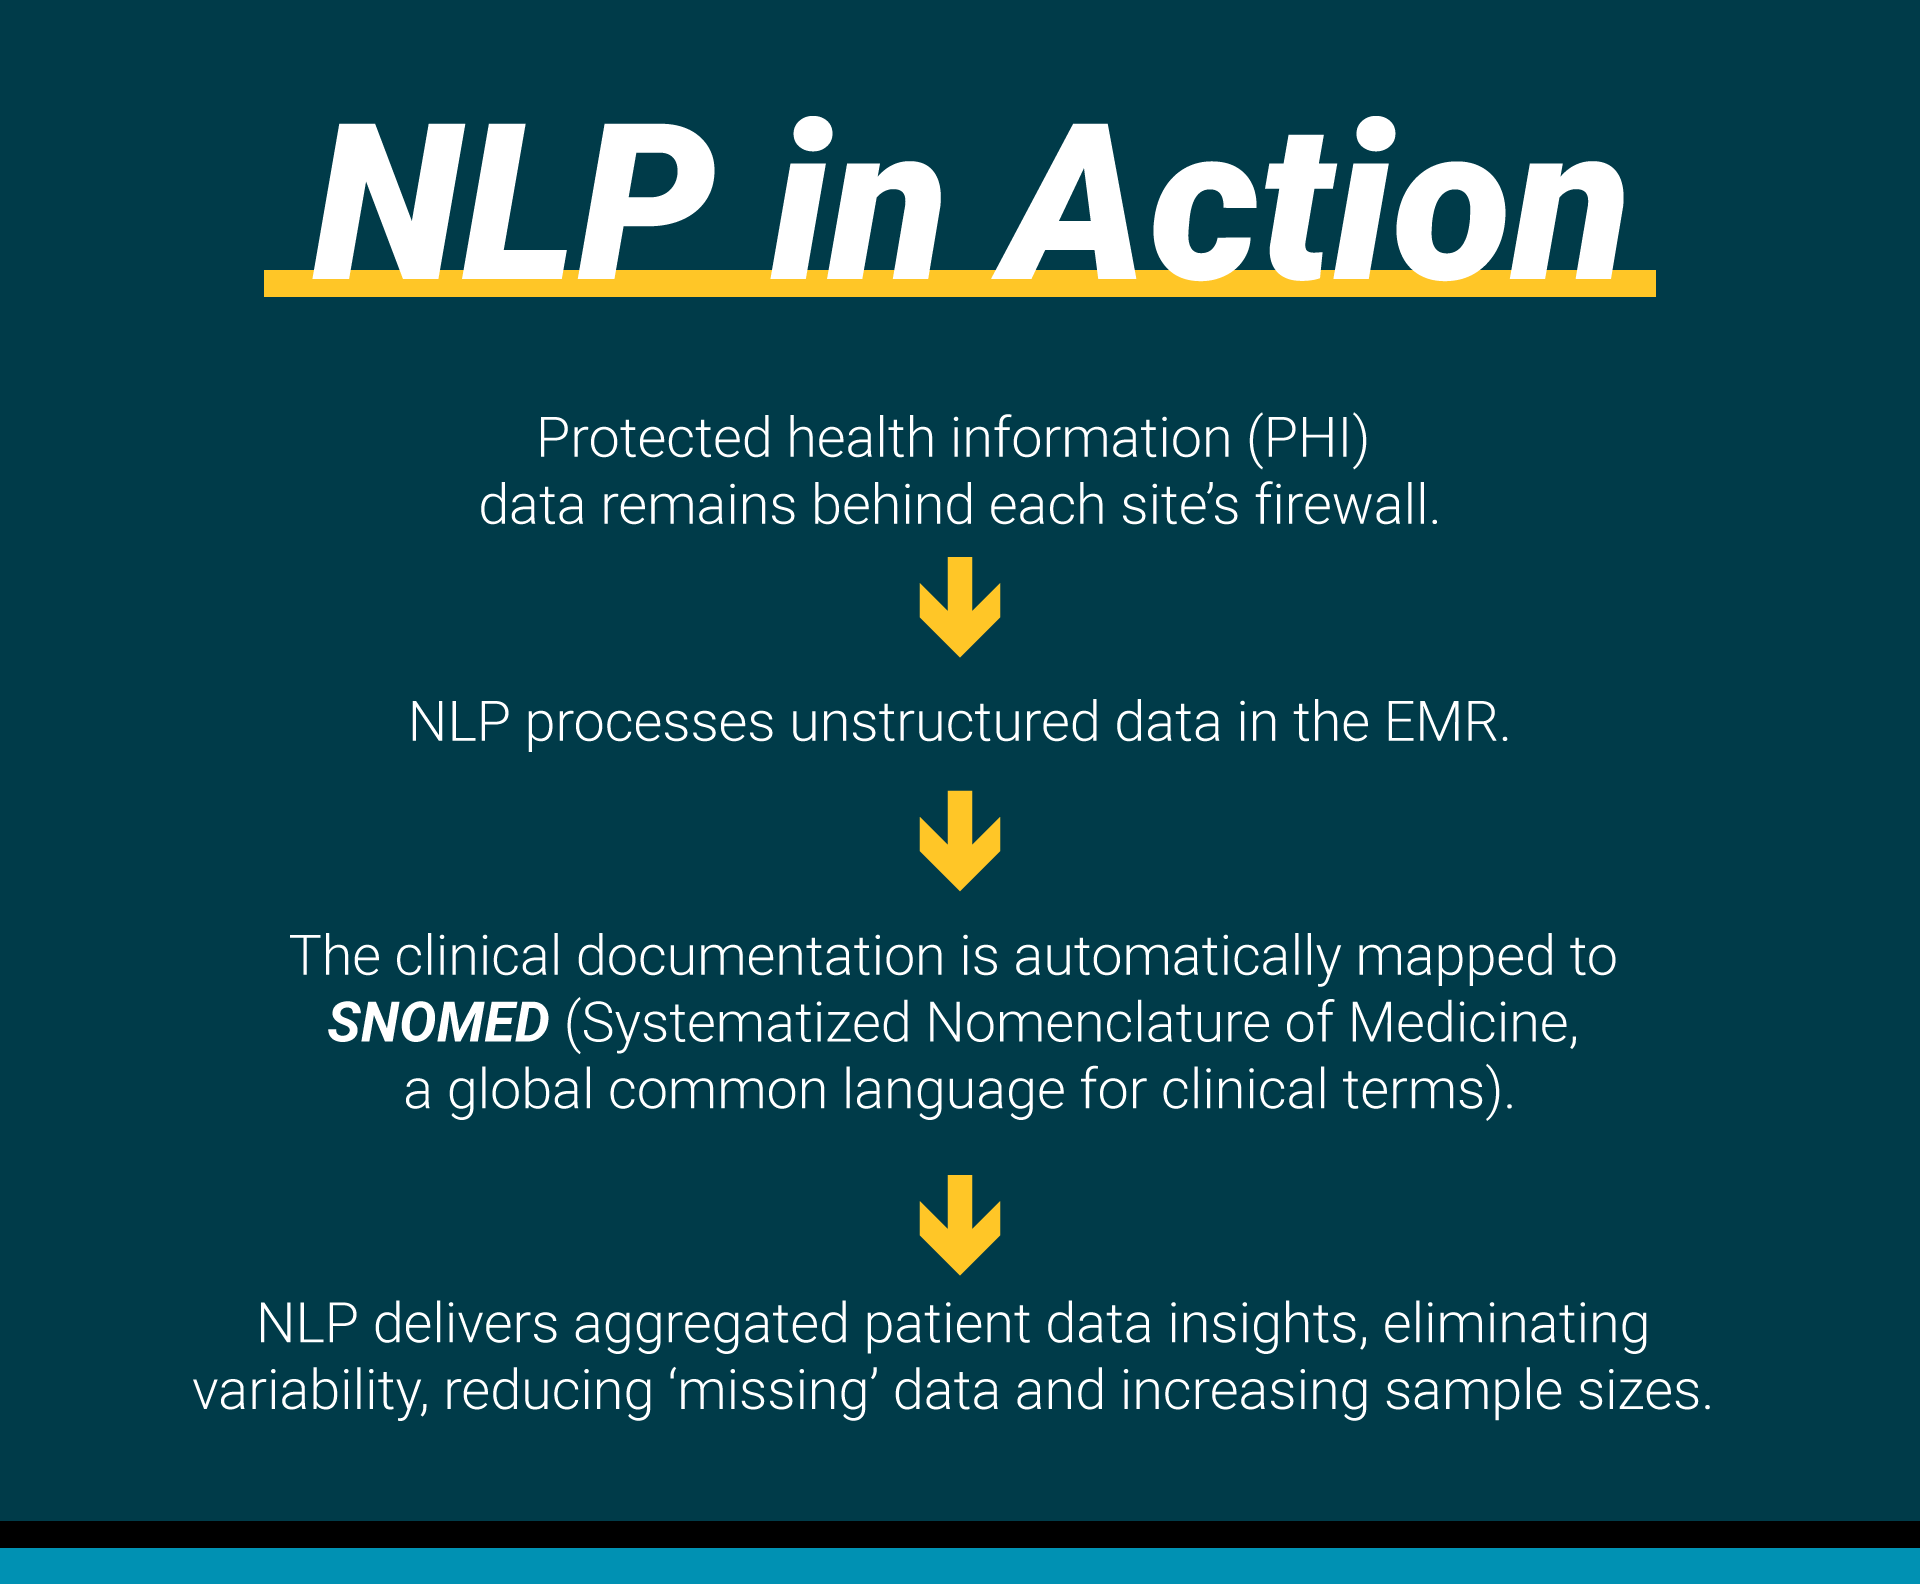 NLPinAction_graphic_v2.png#asset:4792